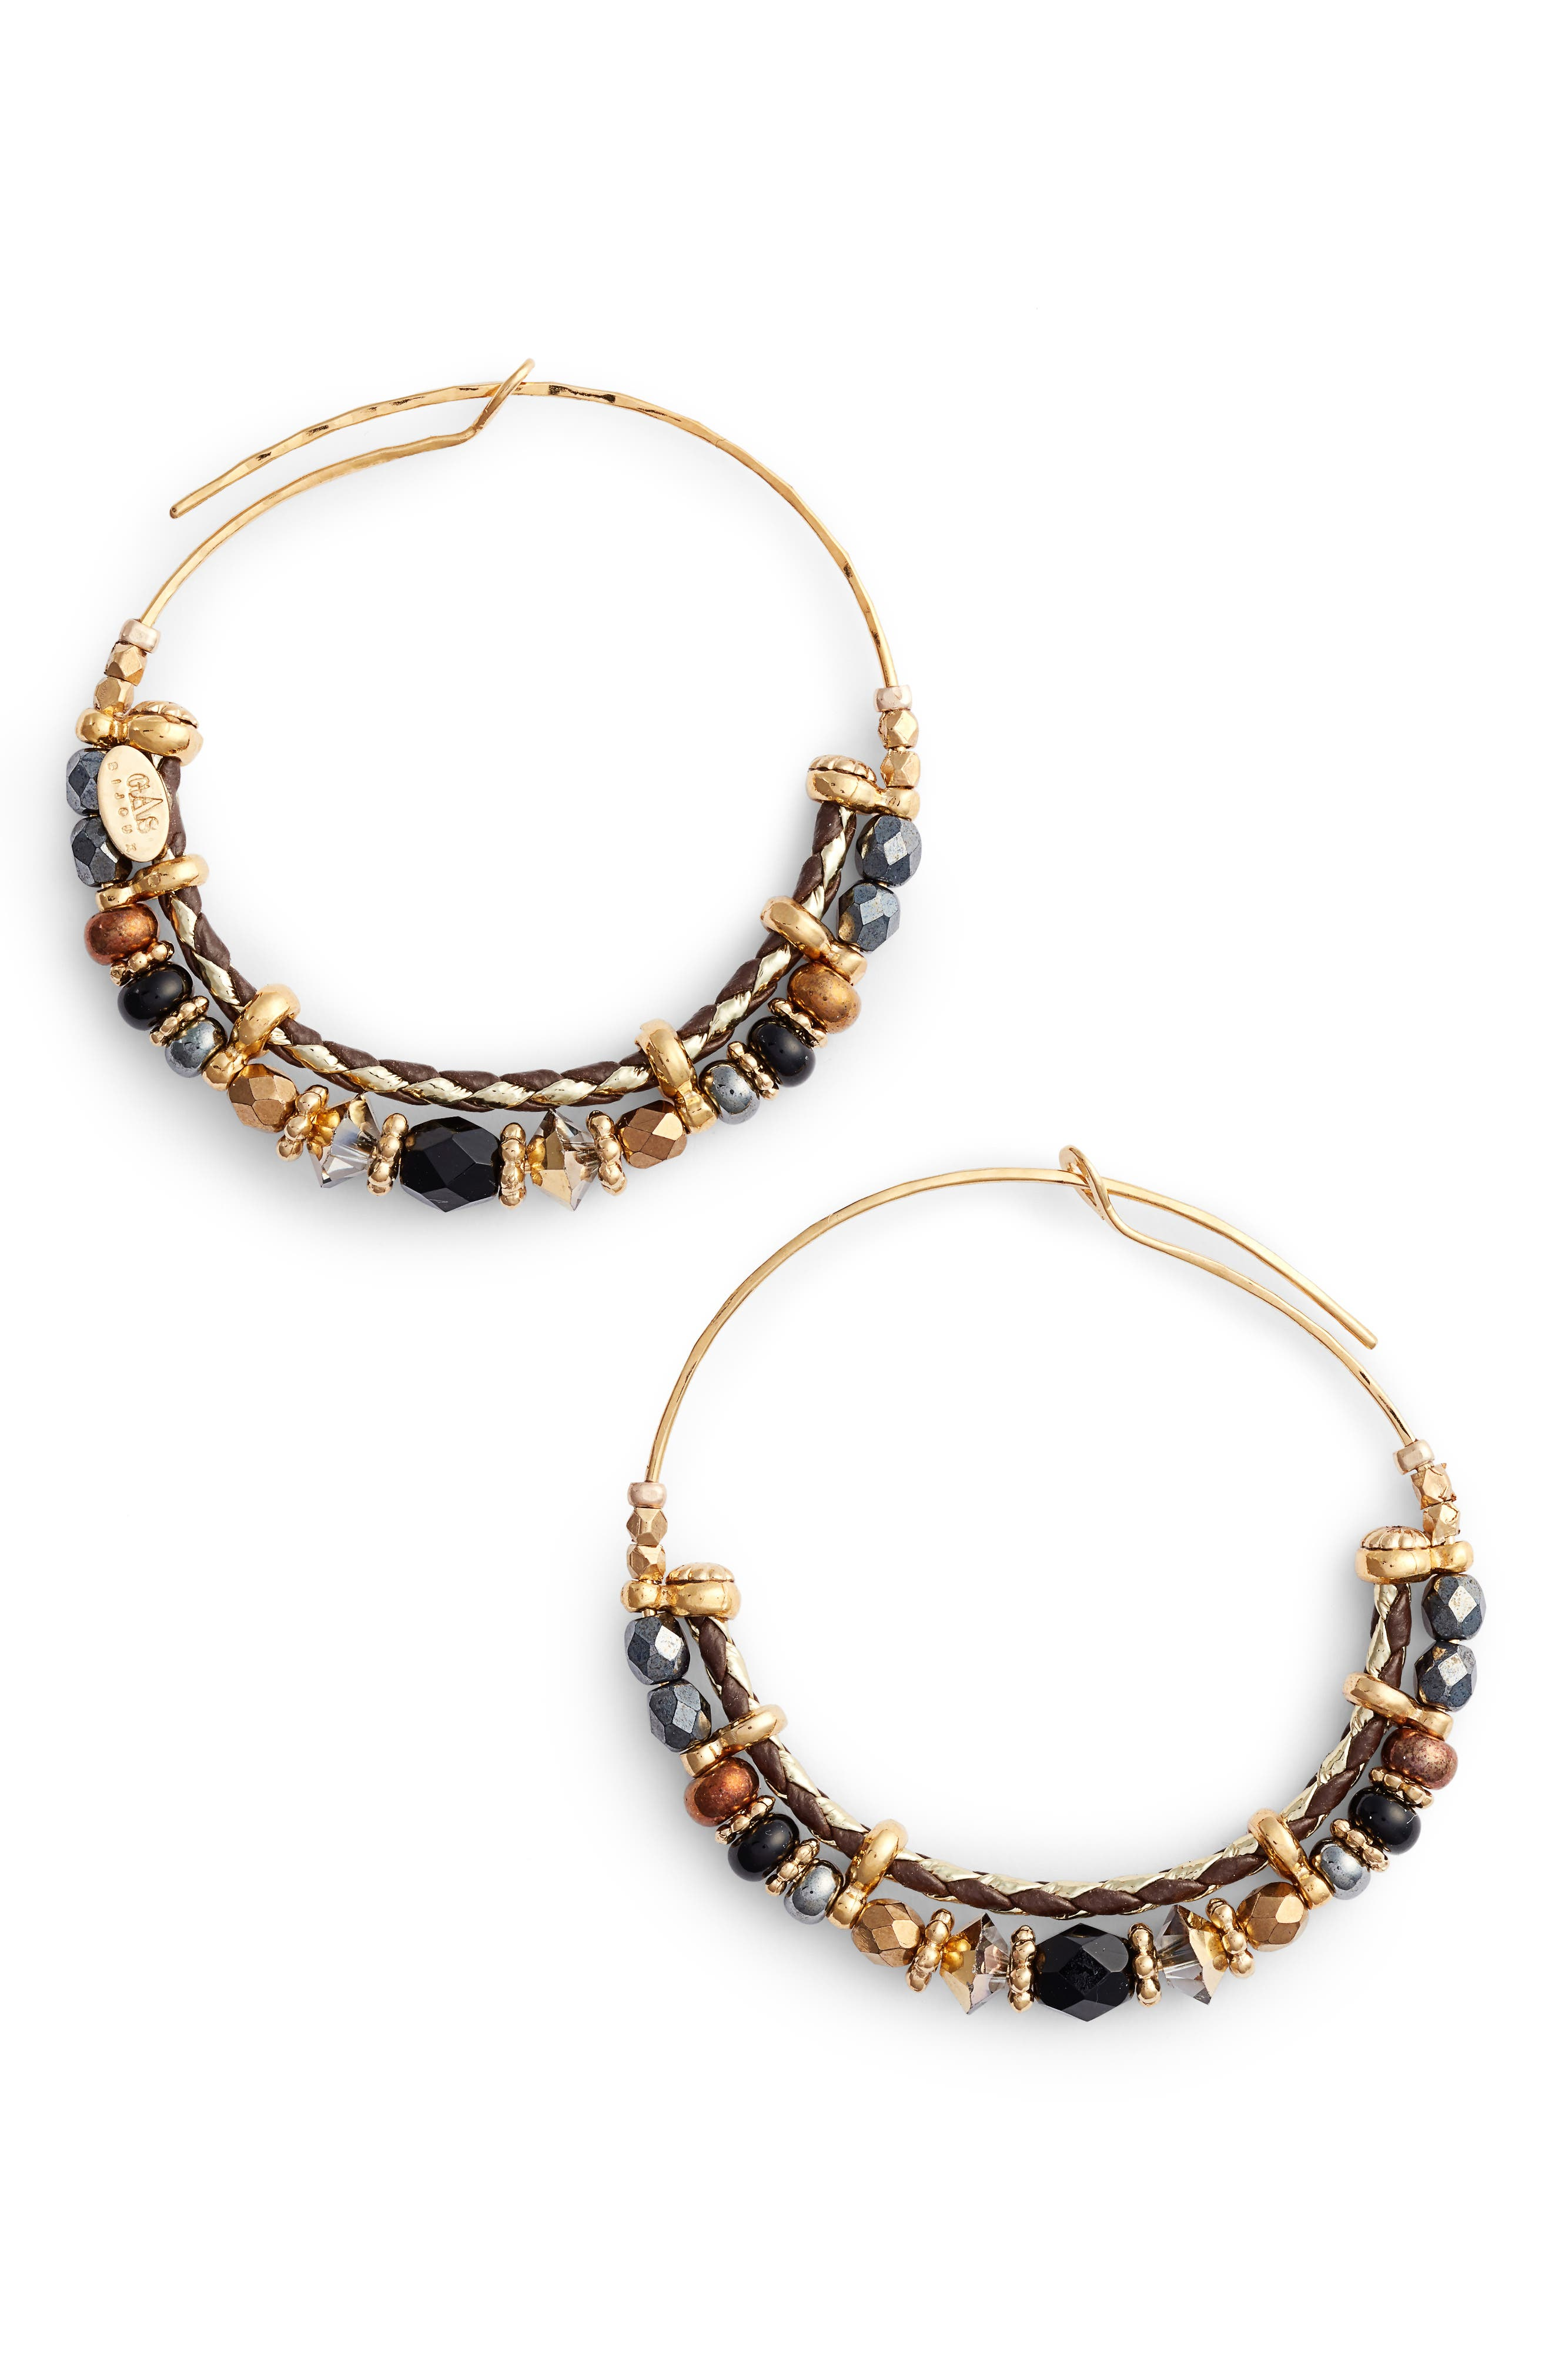 Comedia Small Hoop Earrings,                         Main,                         color, Black/ Gold